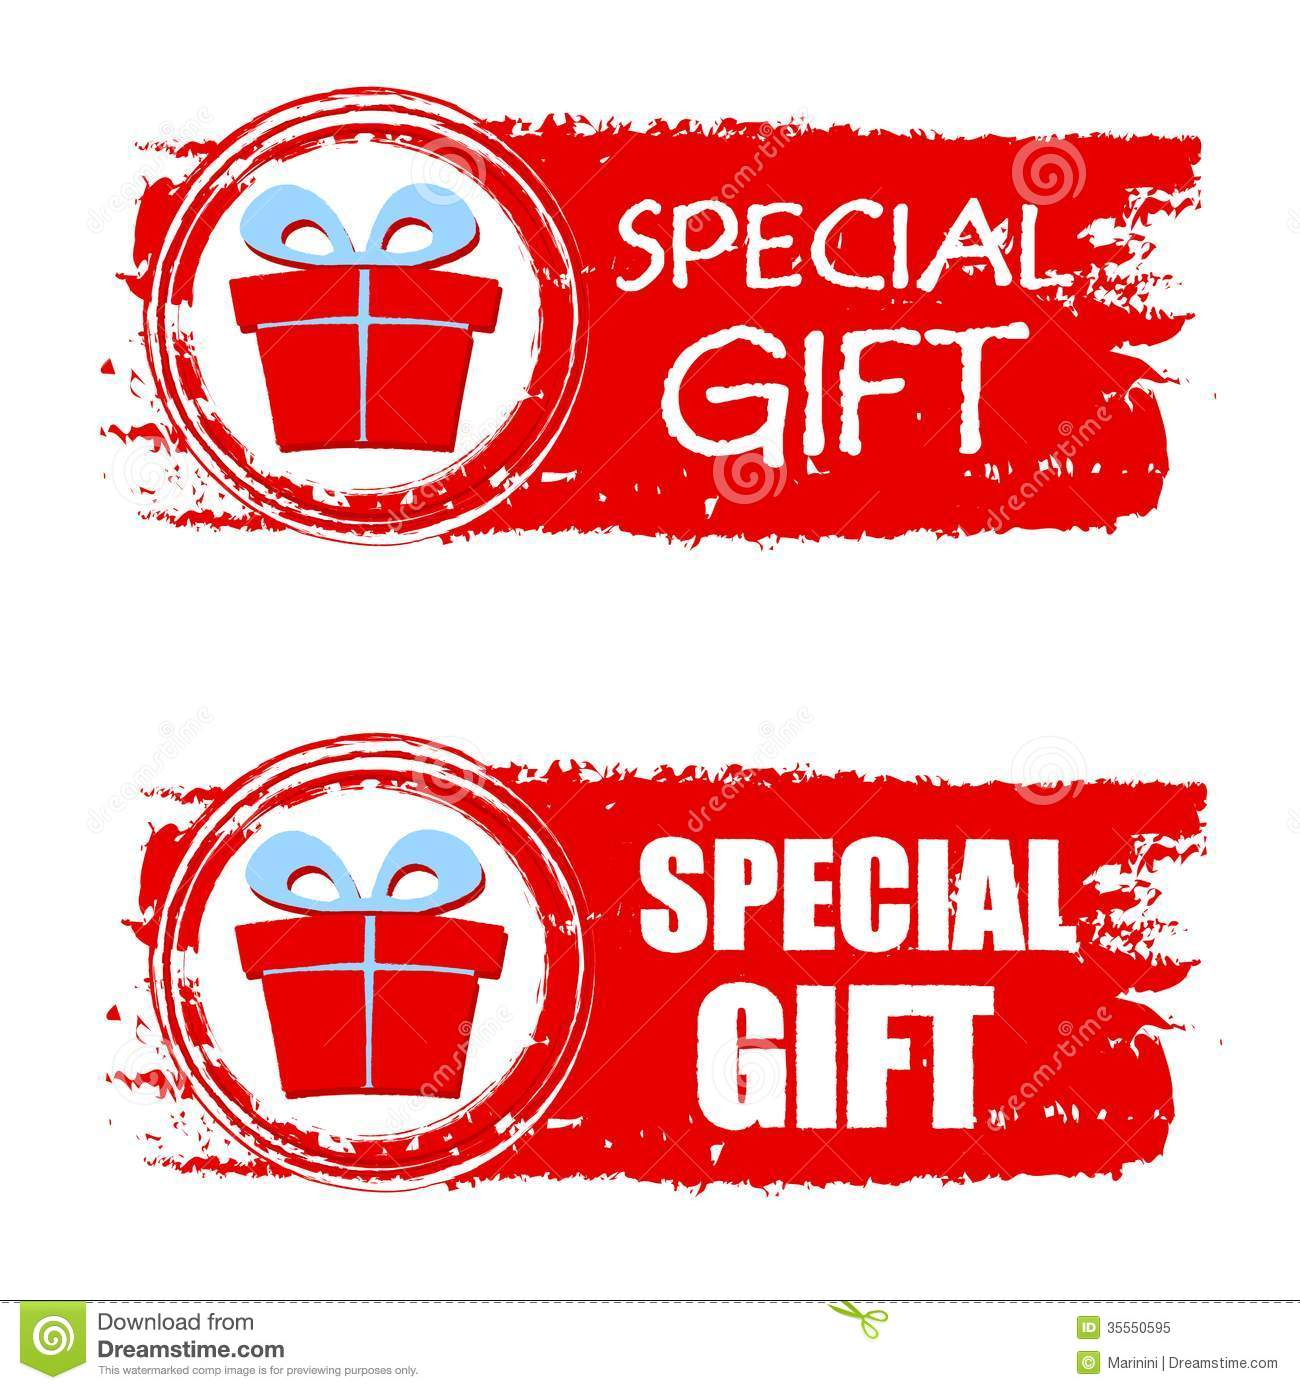 christmas special gift and present box on red drawn banner - Christmas Special